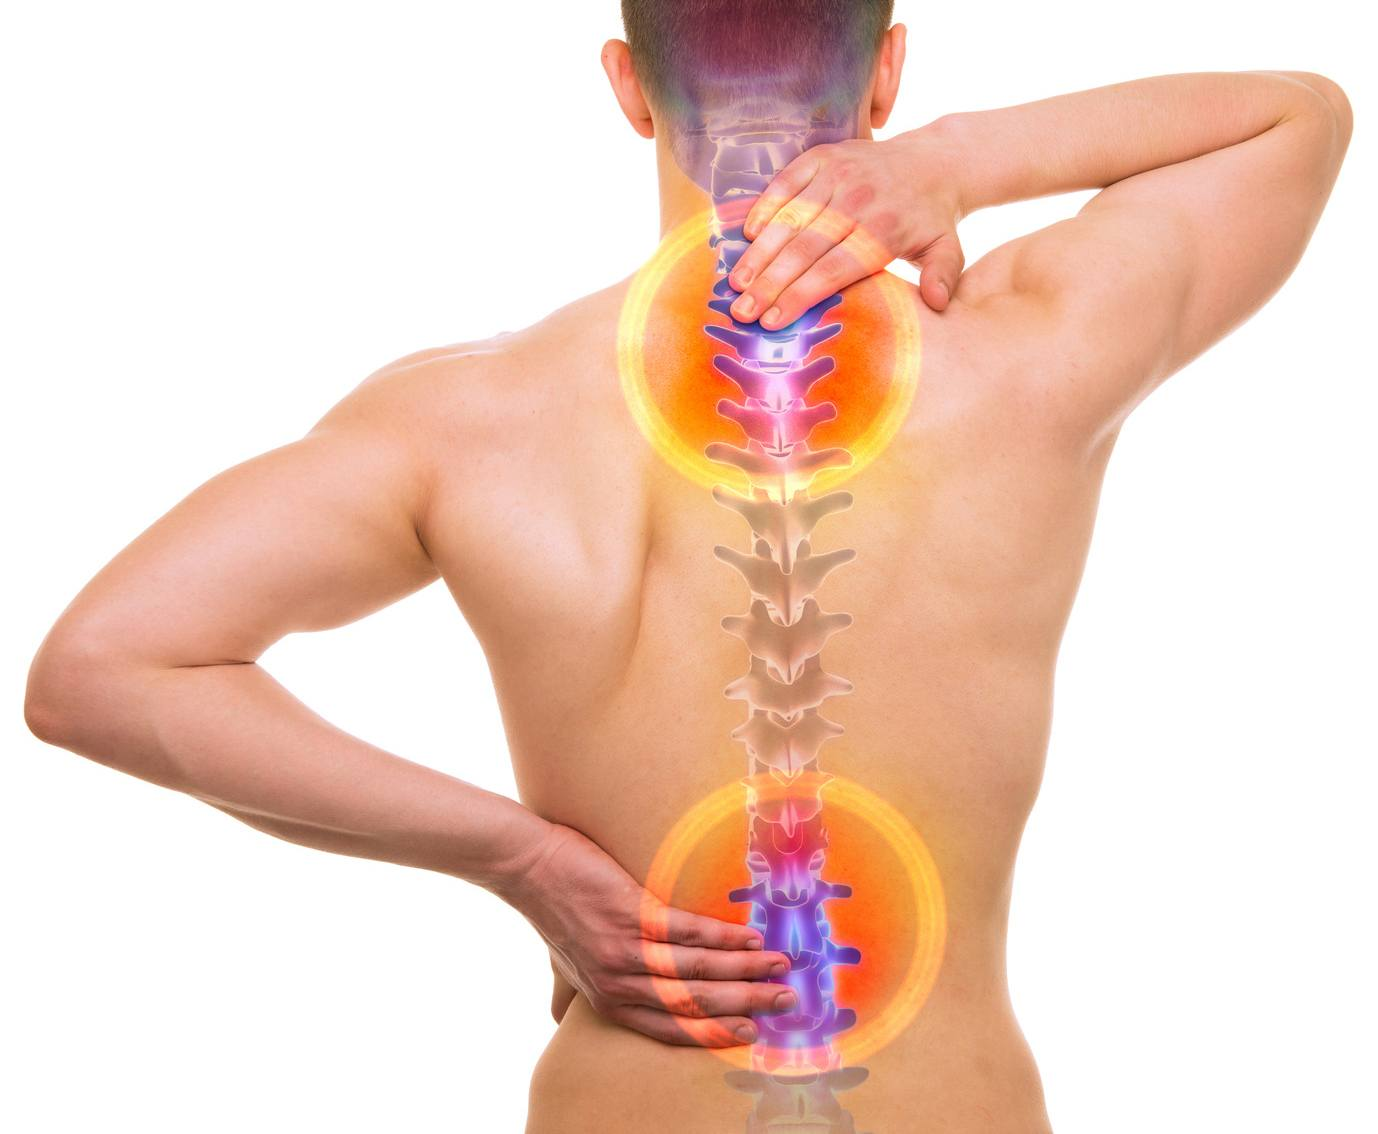 SPINE Pain - Male Hurt Backbone isolated on white - REAL Anatomy concept